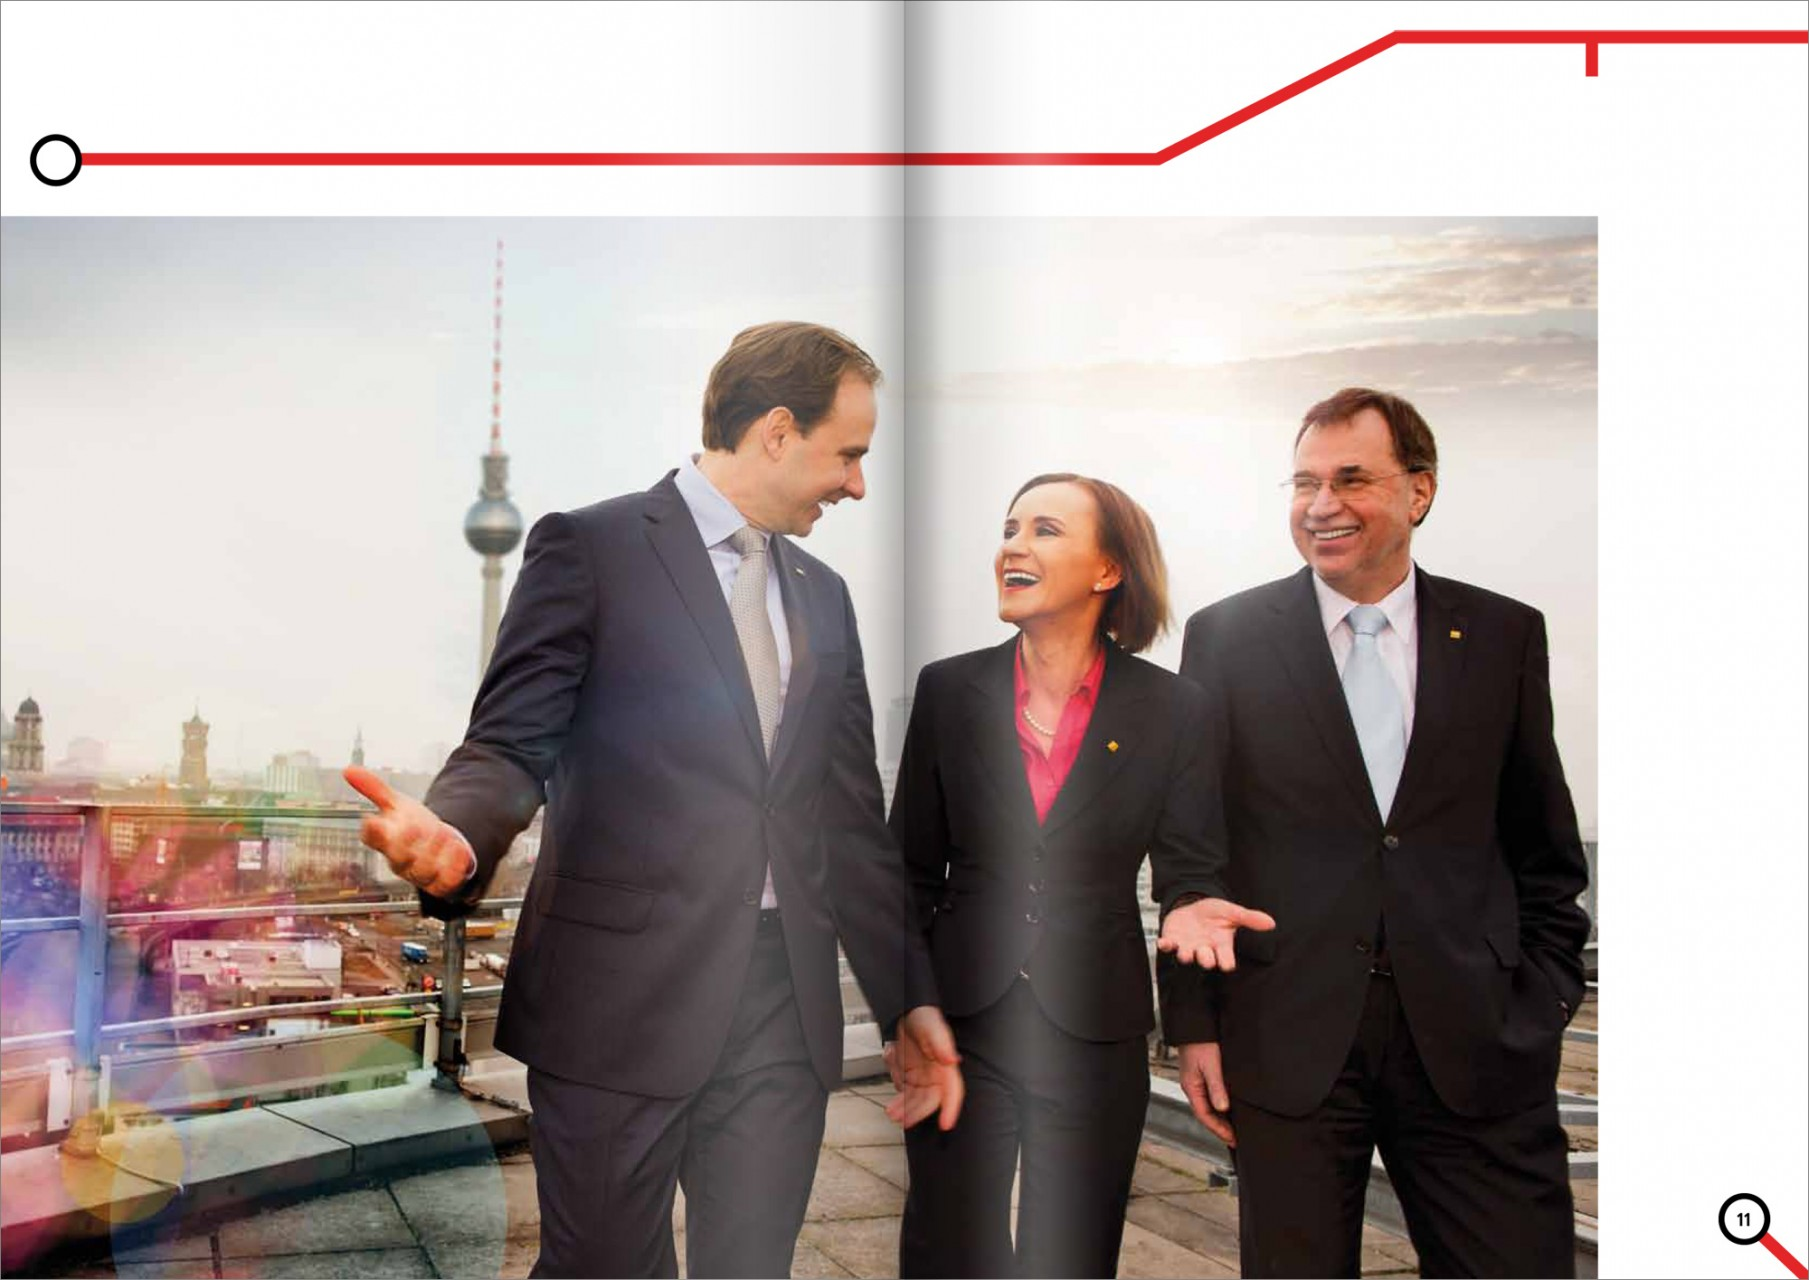 BVG Annual Report